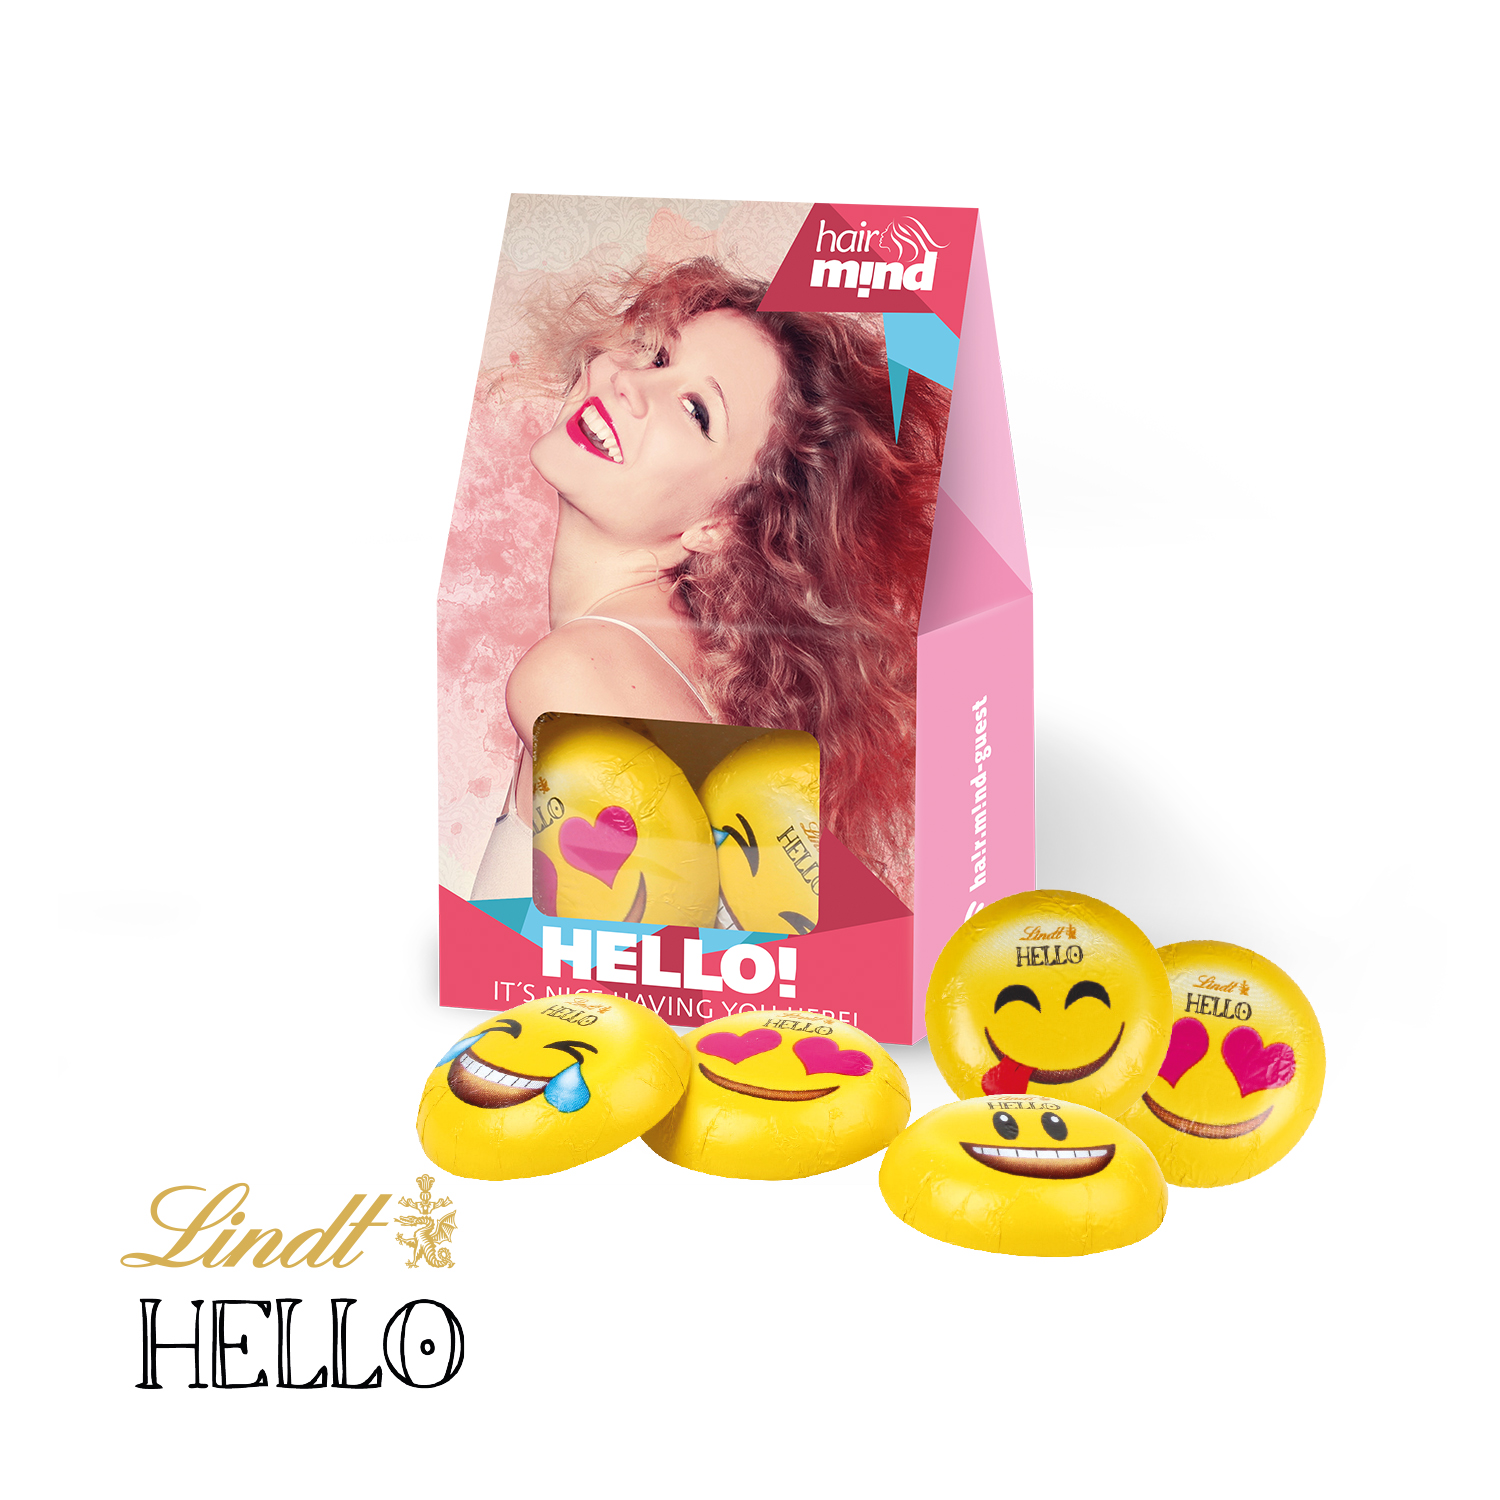 Personalised Lindt Emoji Presentbox | New Products - Distinctive